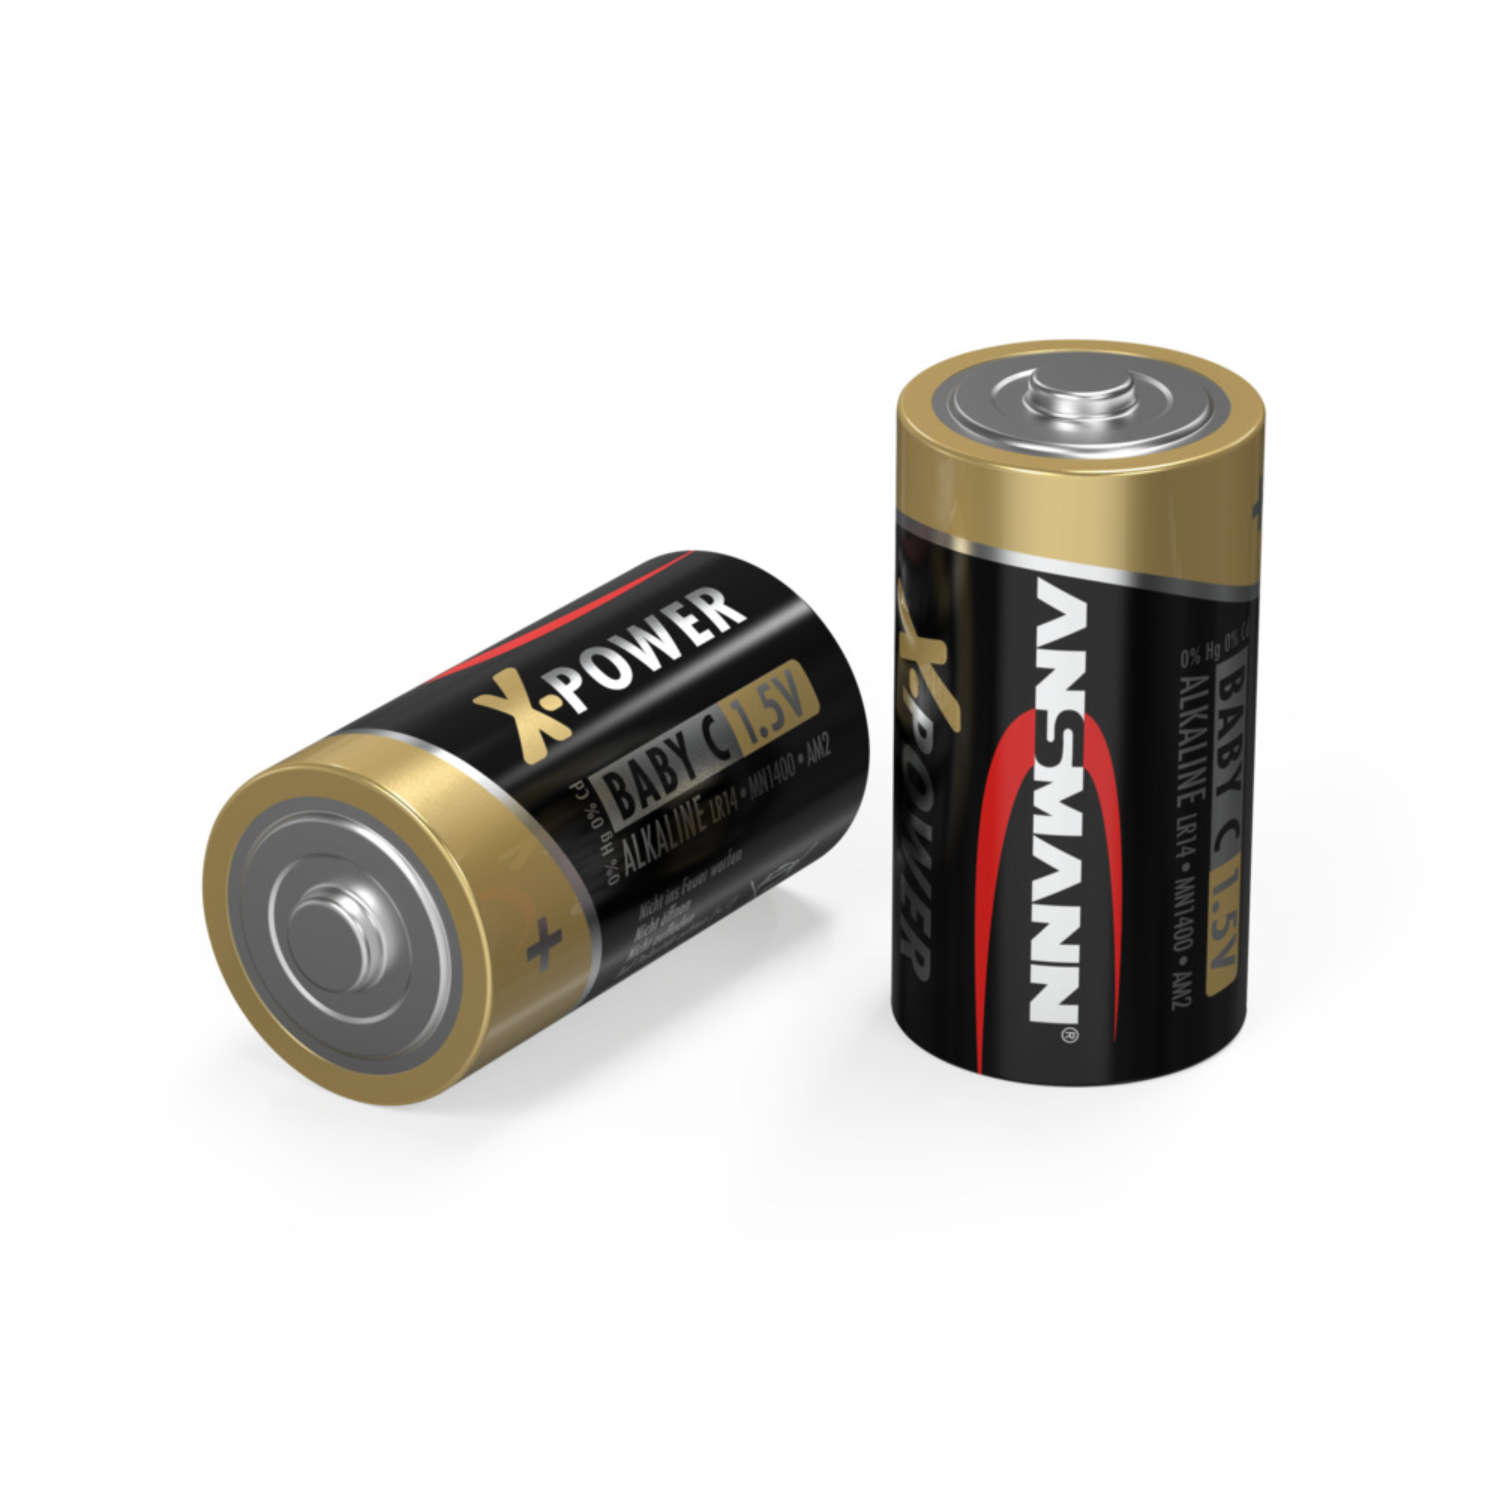 X-Power Alkaline Battery C / LR14 2 pcs. blister packaging